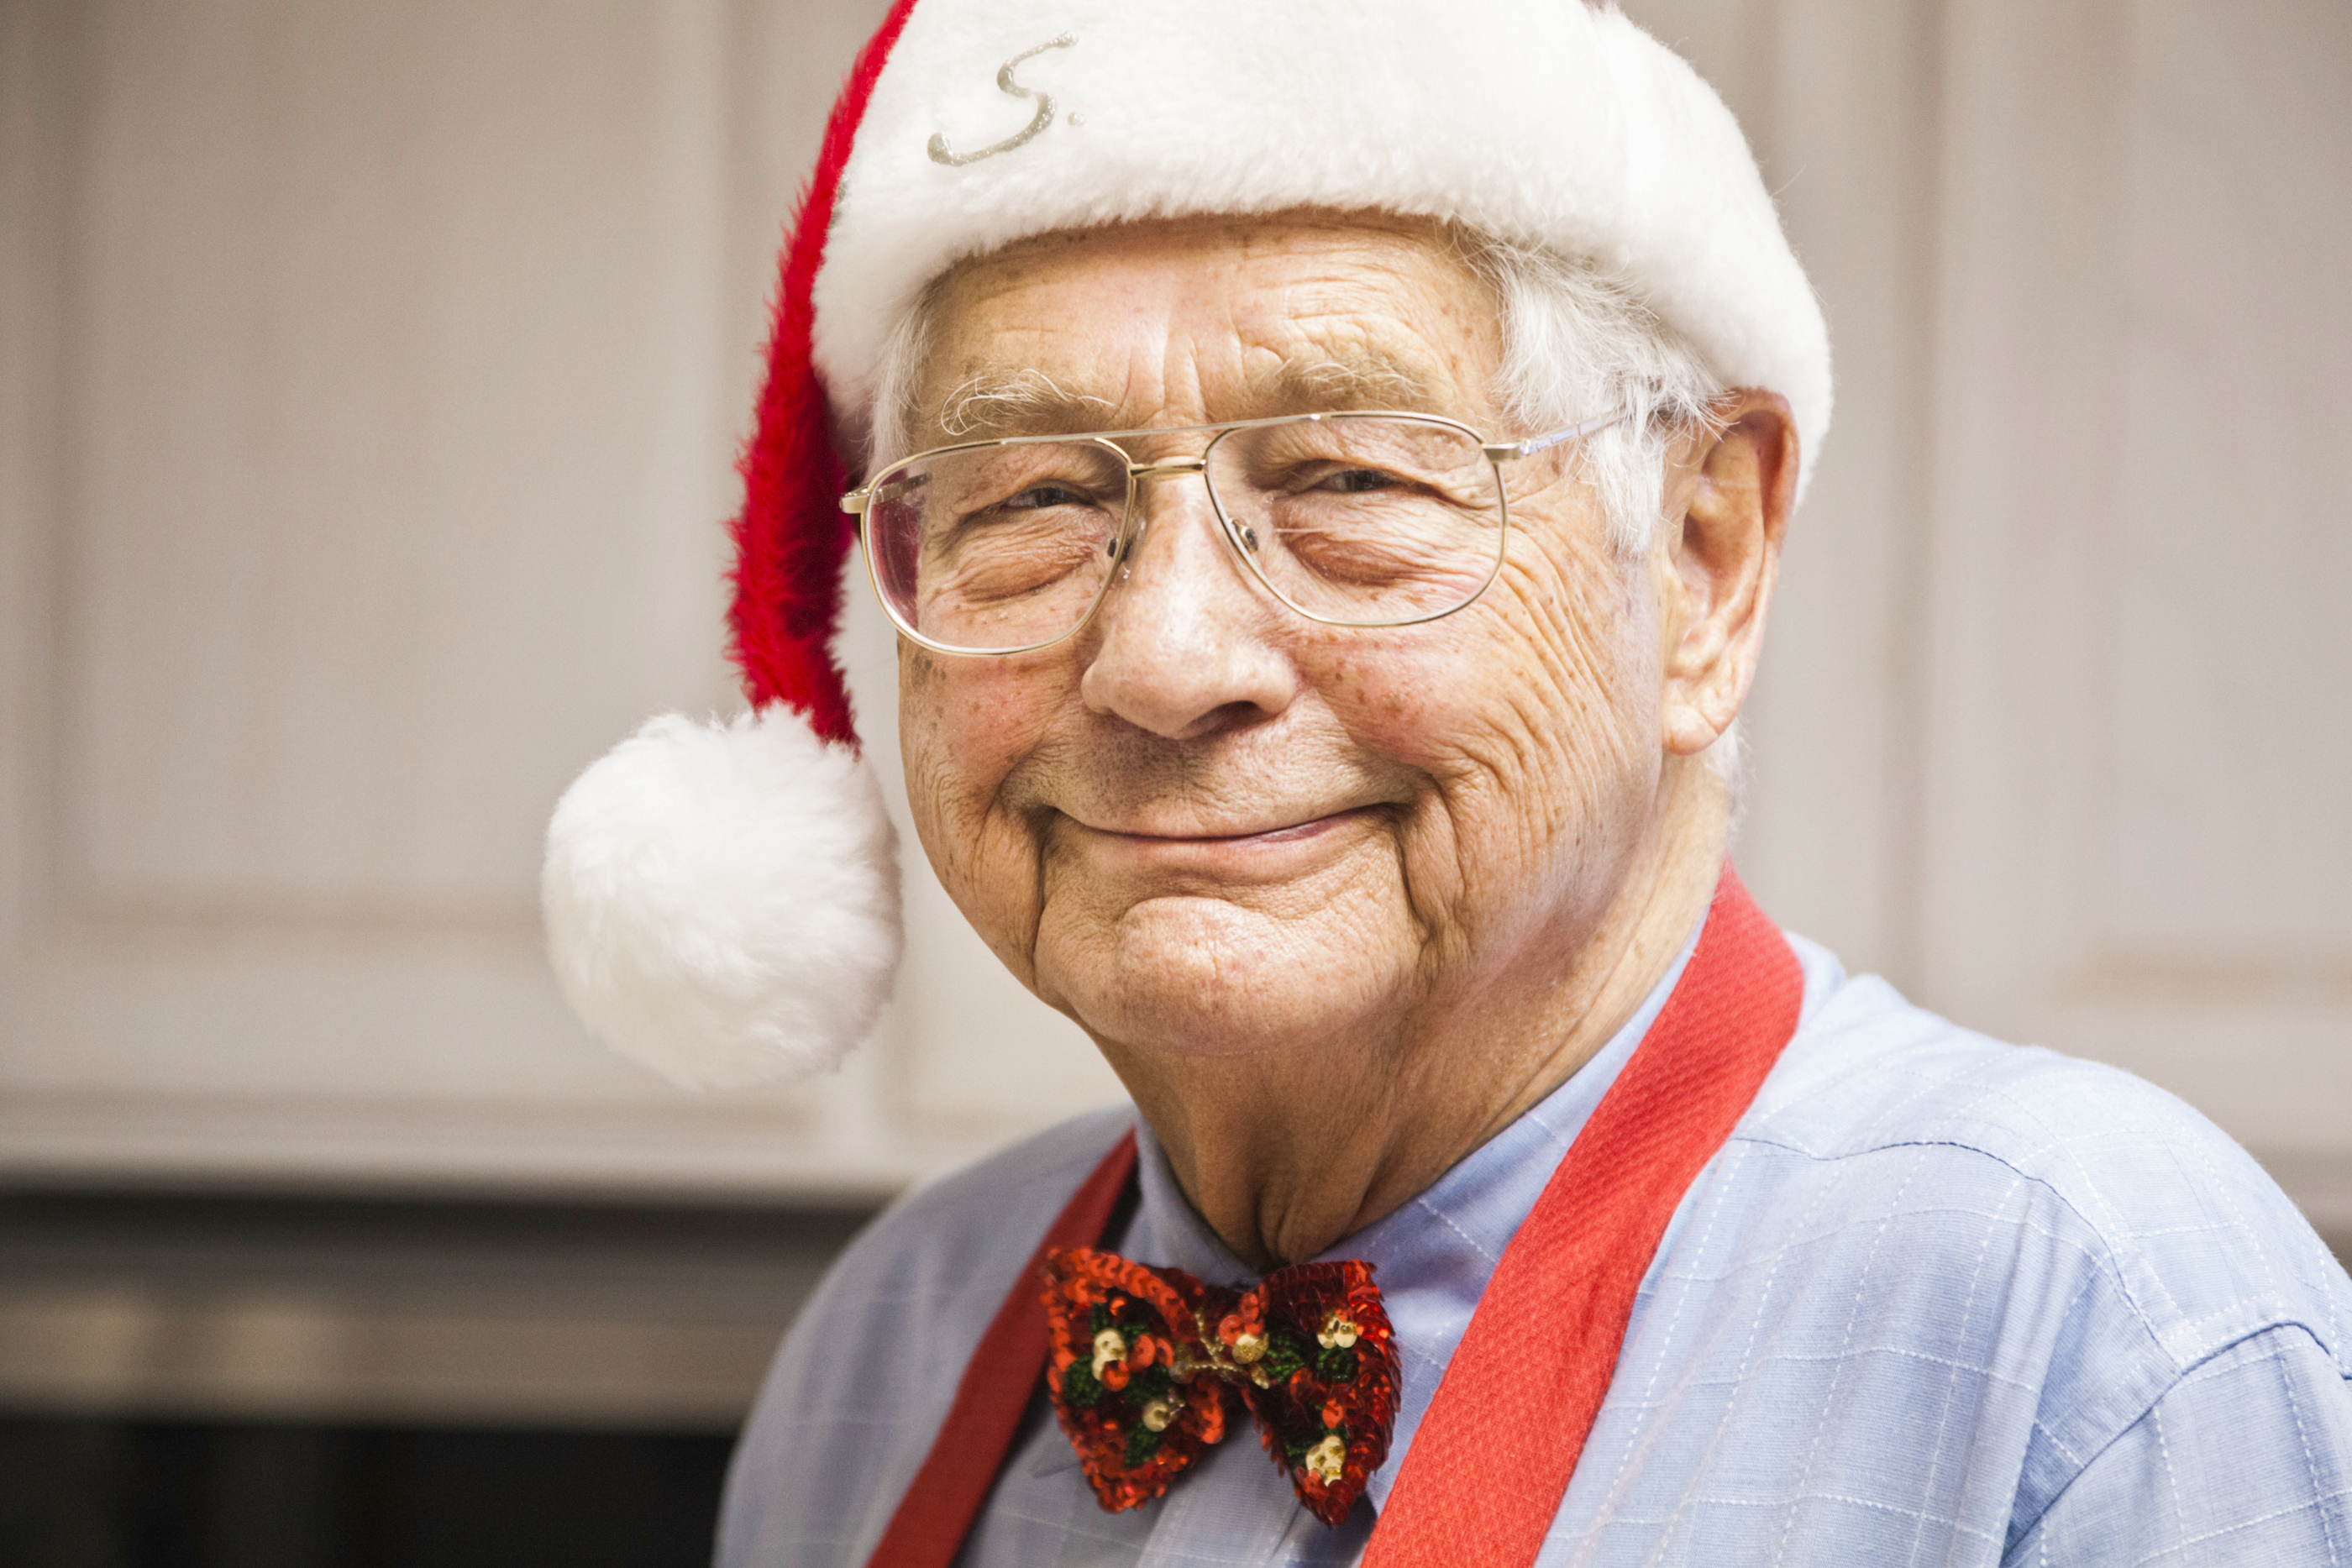 Reducing Isolation Amongst Older People This Festive